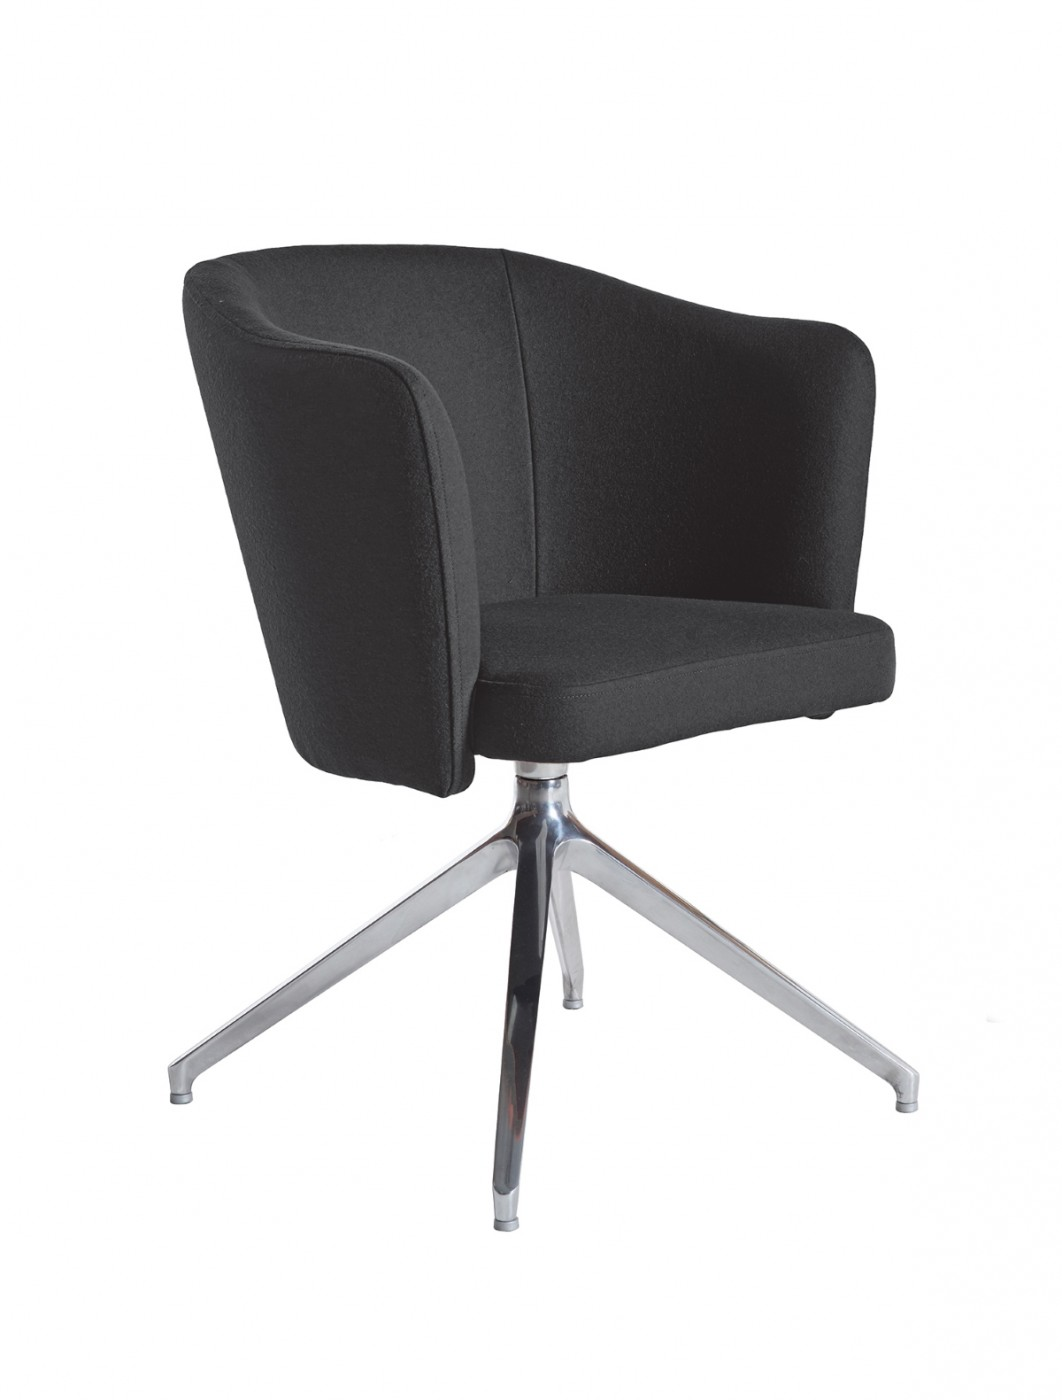 Soft Seating - Dams Otis Single Seater Tub Chair OTIS01 | 121 Office ...